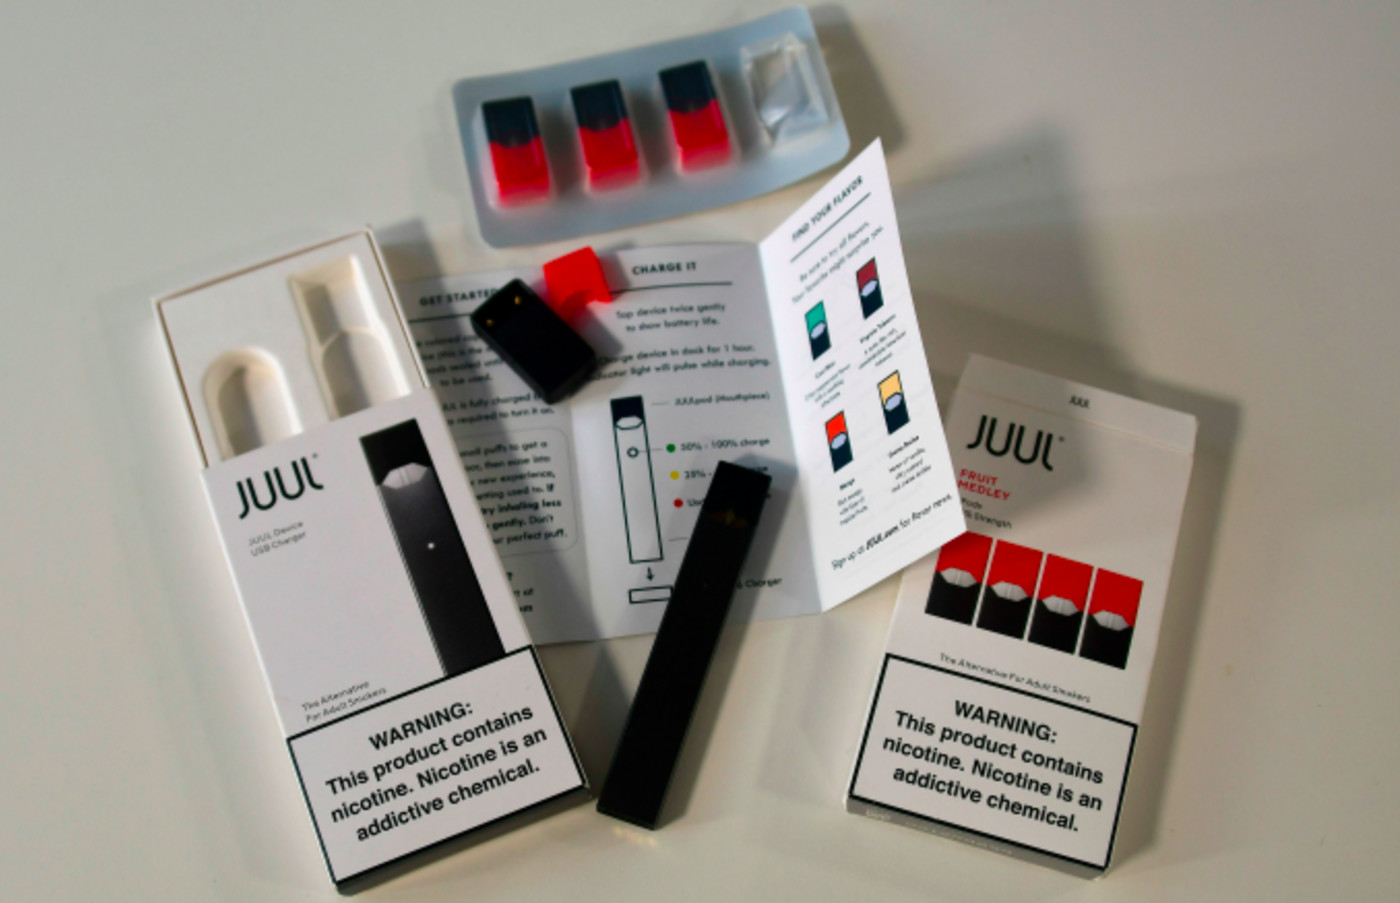 An illustration shows the contents of an electronic Juul cigarette box